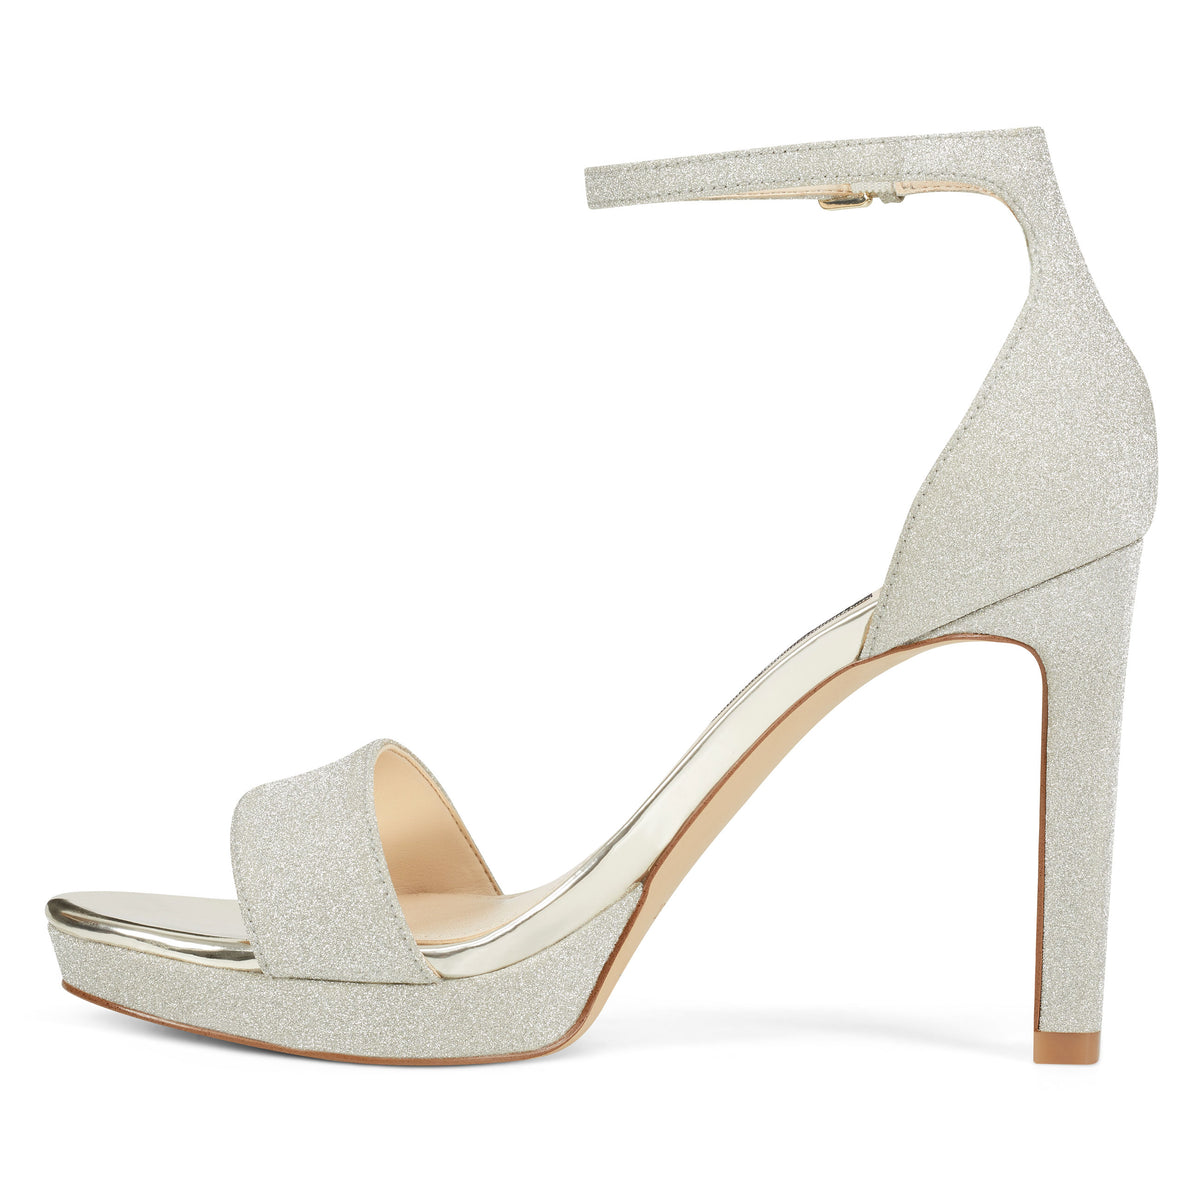 edyn-ankle-strap-sandals-in-gold-glitter